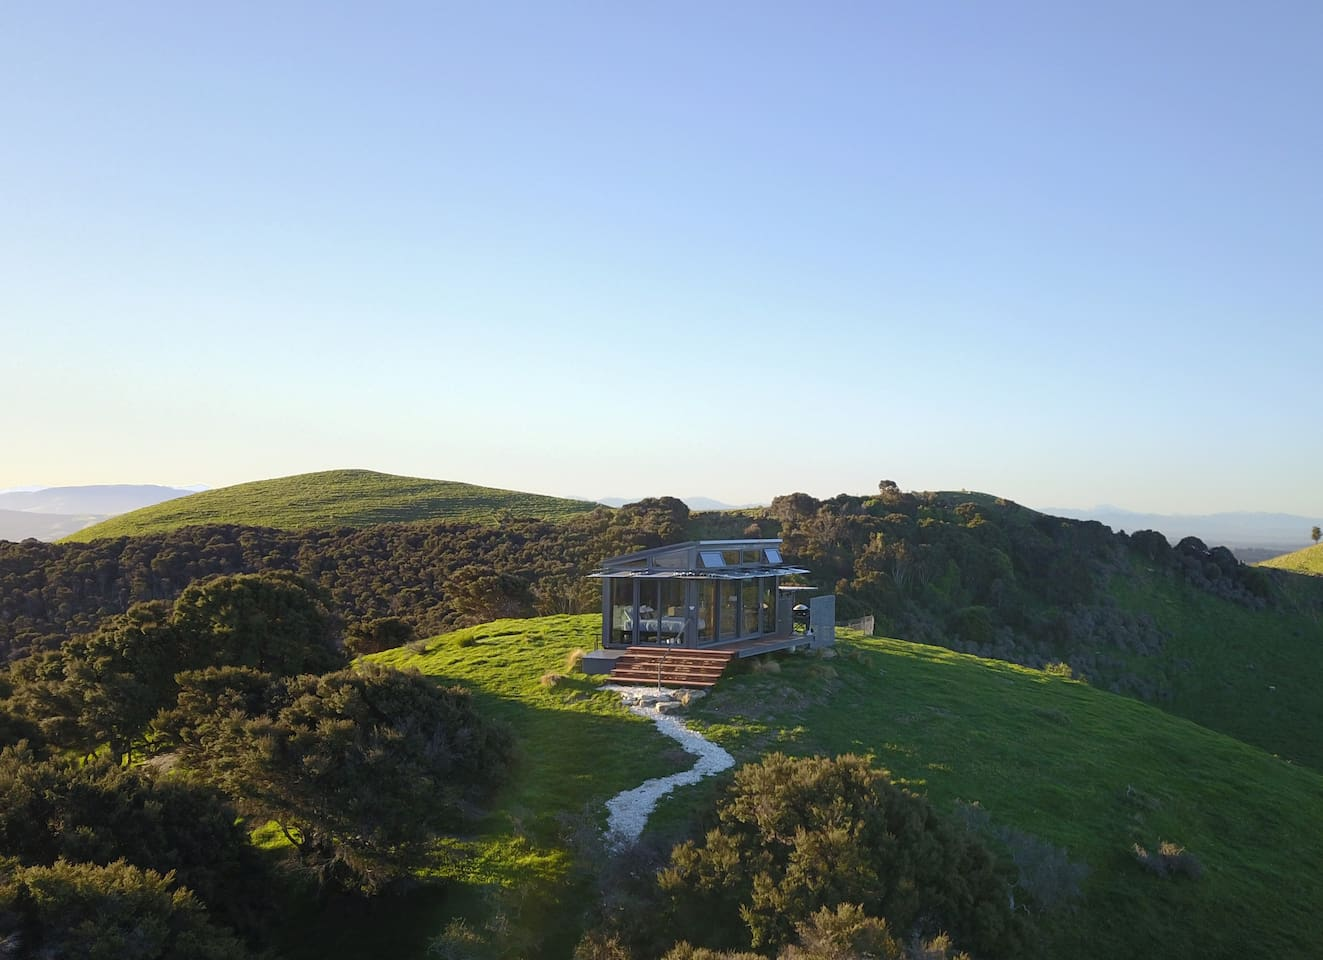 Surrounded by rolling hills, and with fabulous views straight out to the Pacific Ocean